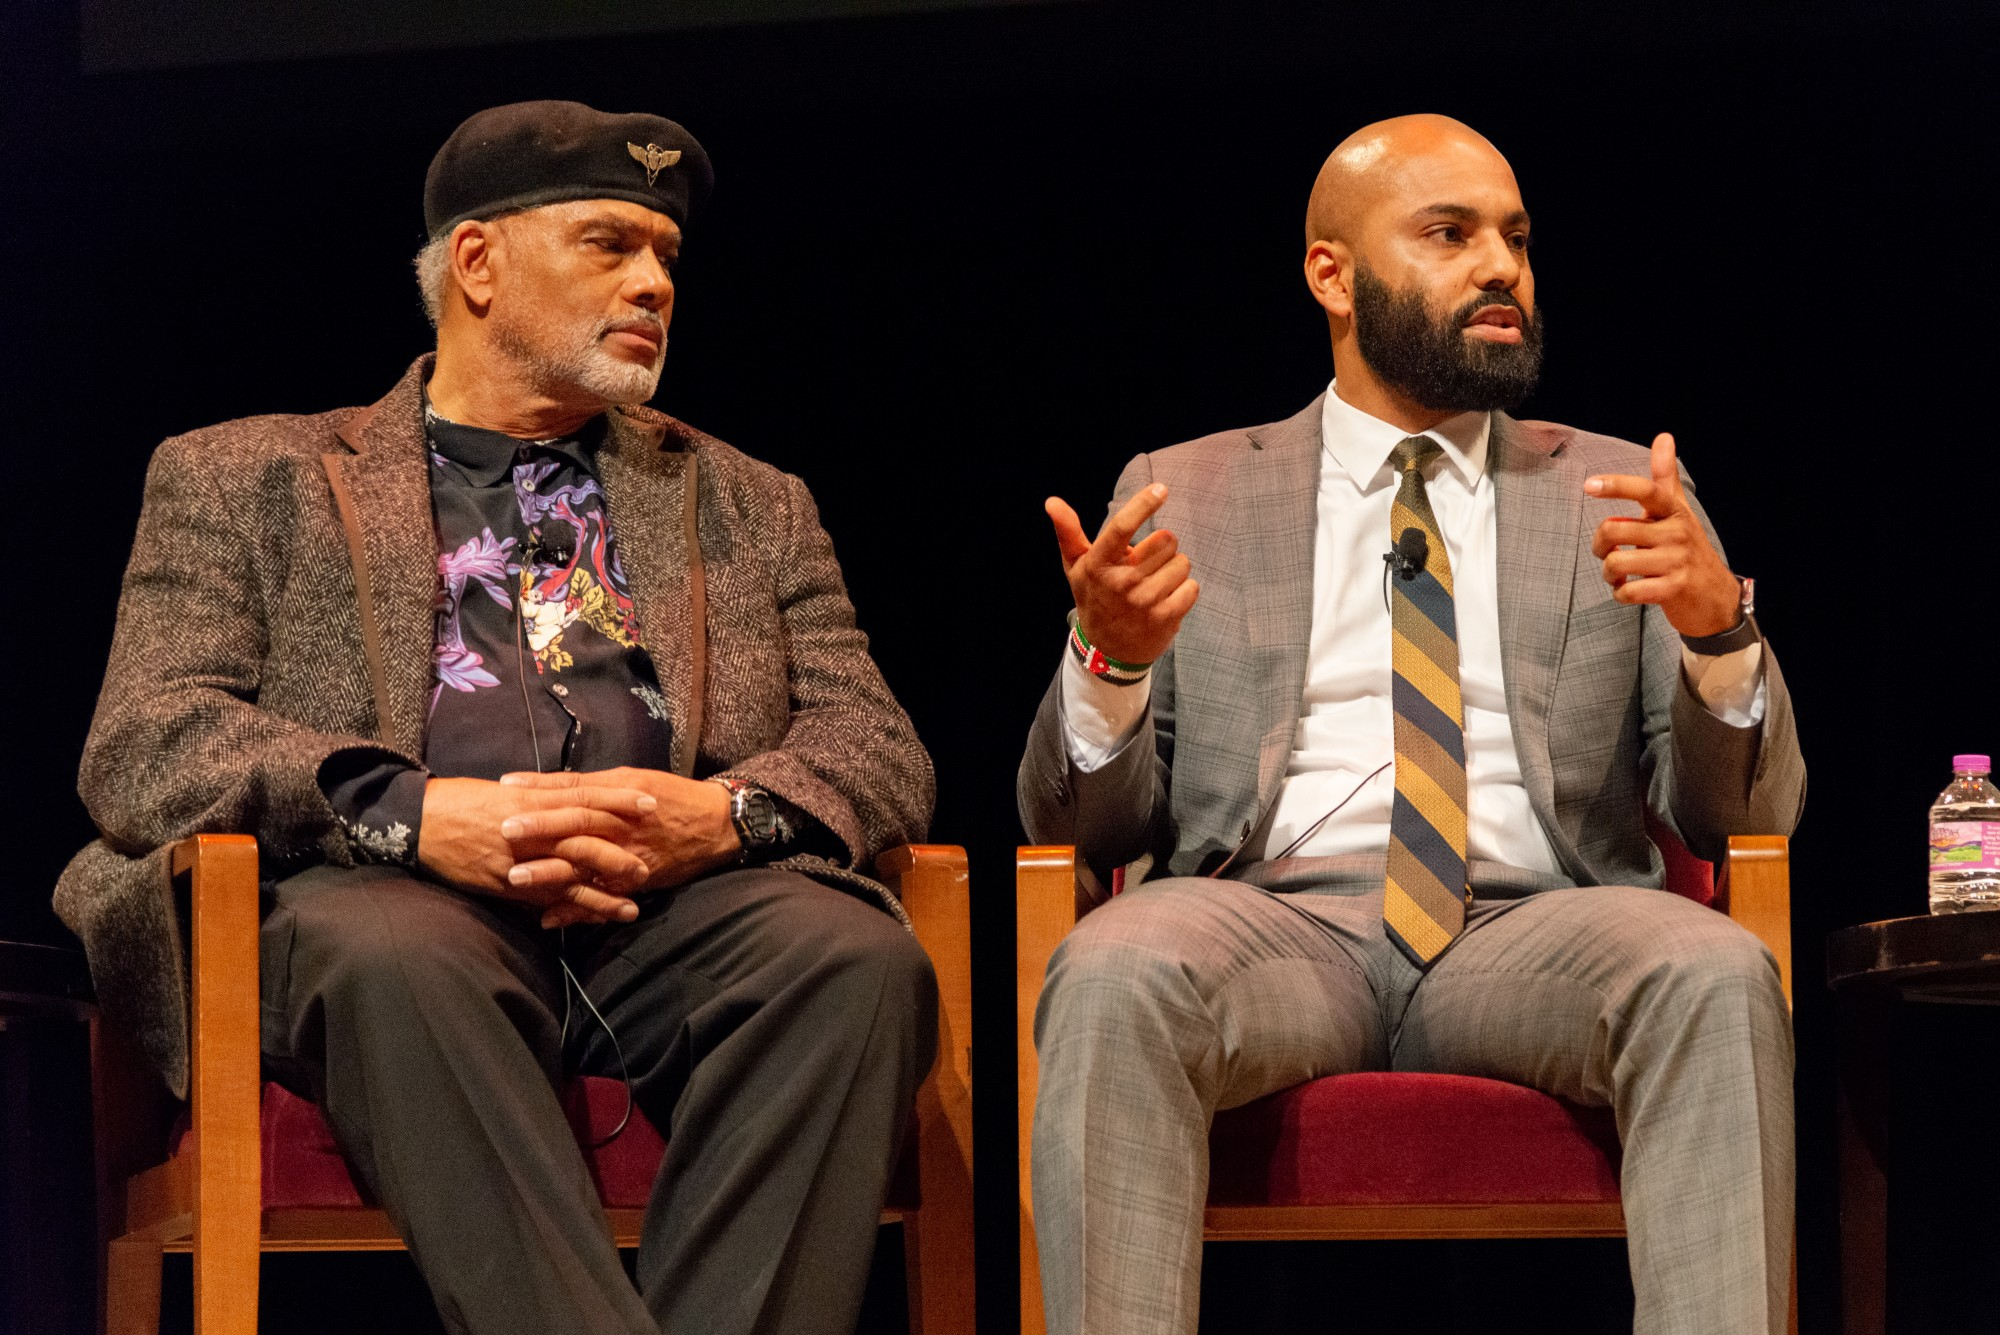 """Panelists John Wright, left, and Abdul Omari discuss the """"This Free North"""" documentary at Northrop Auditorium on Tuesday, Feb. 18. The event included a documentary premiere and a discussion about black history at the University of Minnesota."""